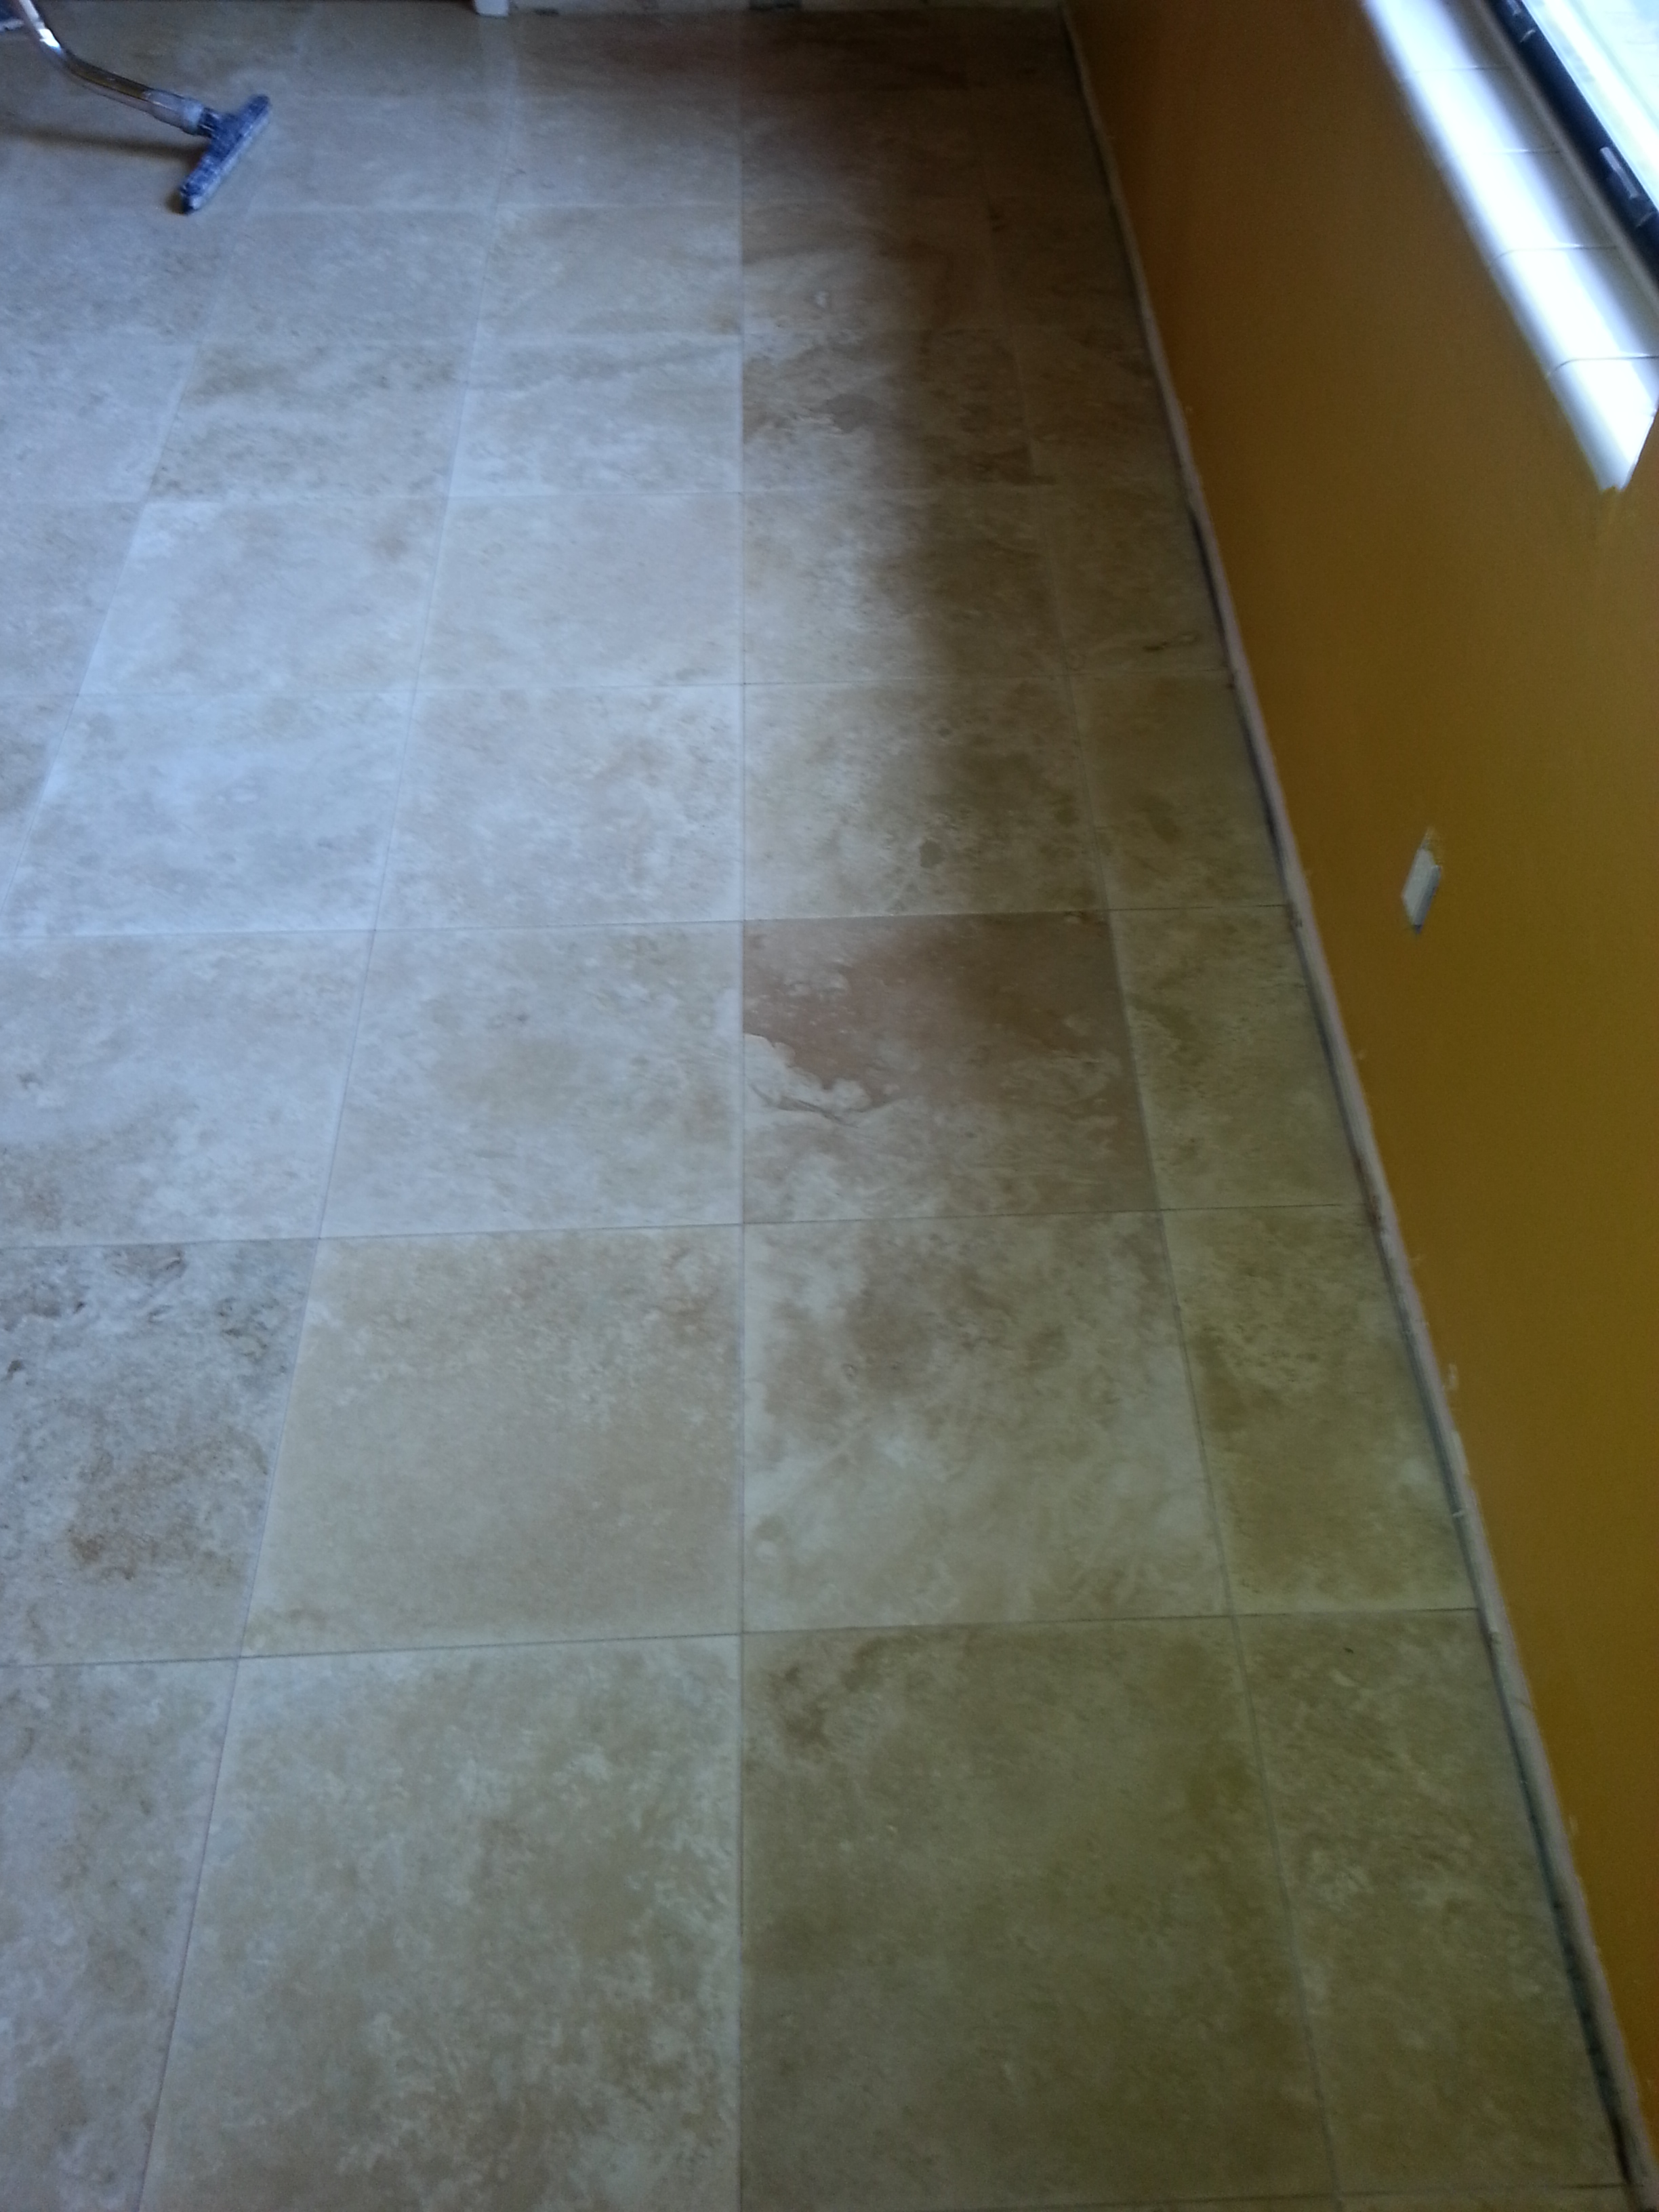 Travertine floor tile installer in jackonsonville travertine floor tile installer in jackonsonville completes floor install dailygadgetfo Gallery